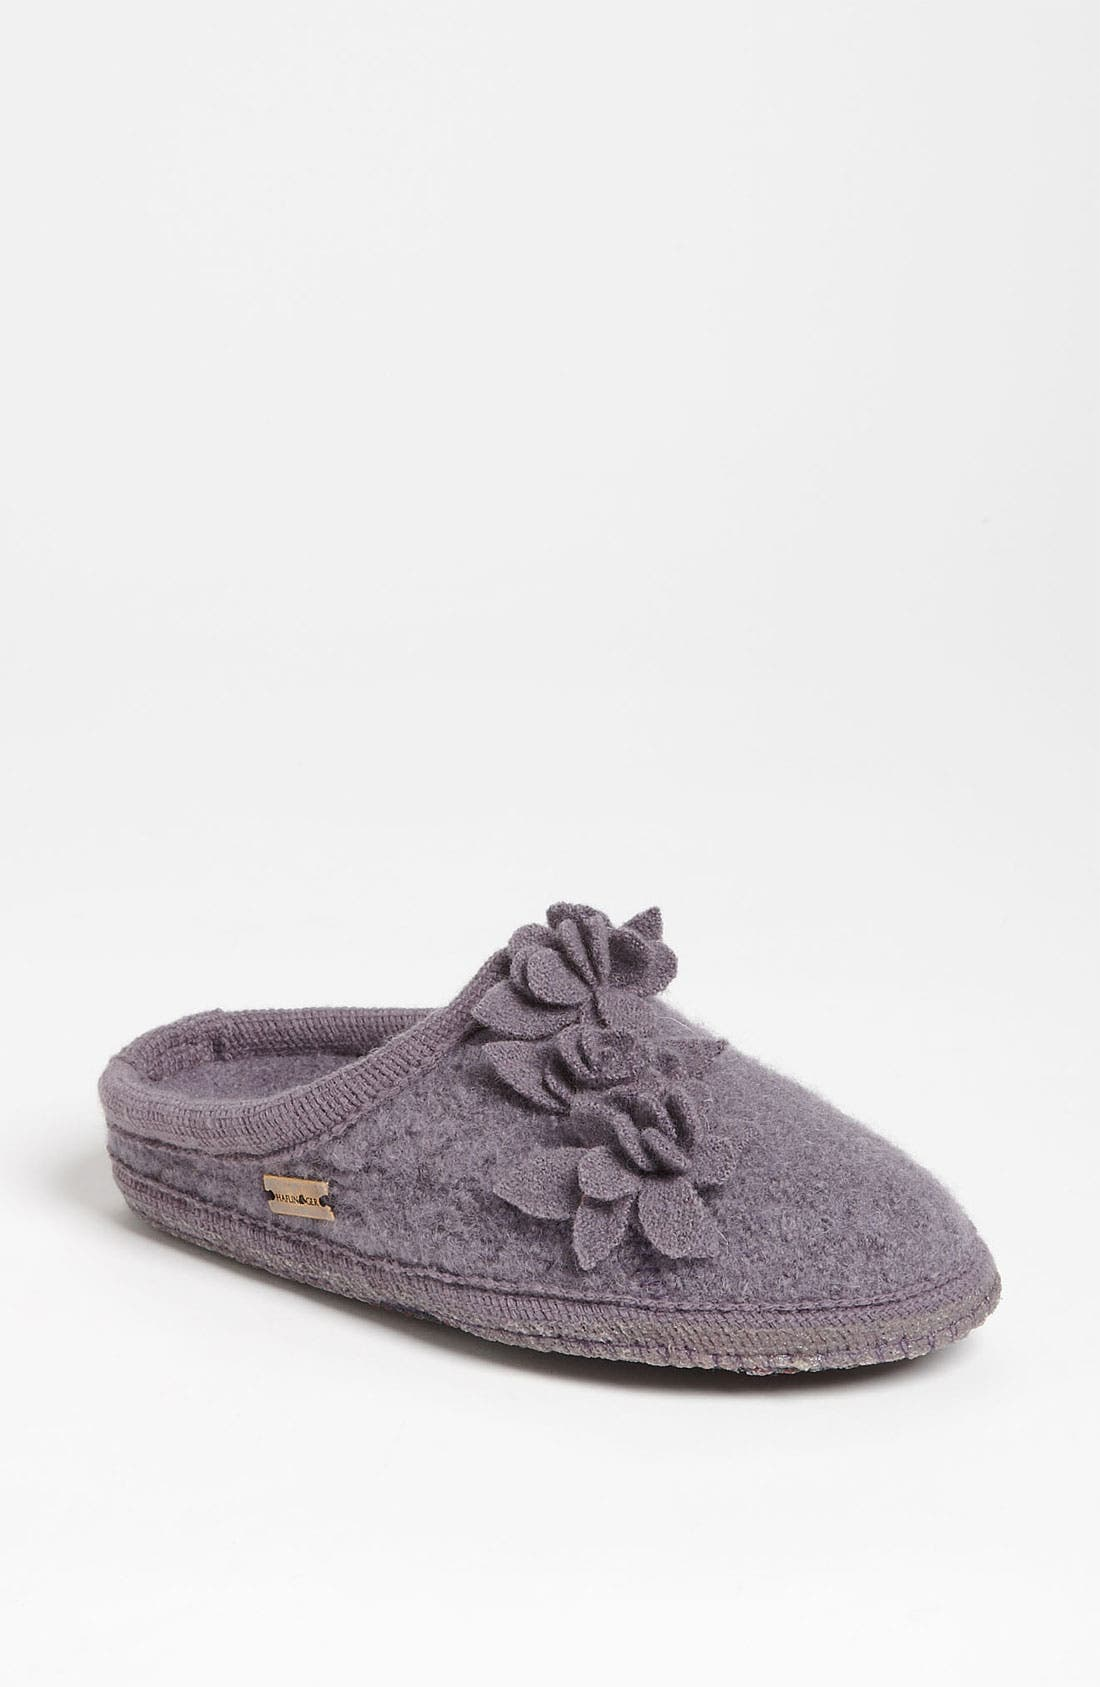 Haflinger 'Romantic Flowers' Slipper